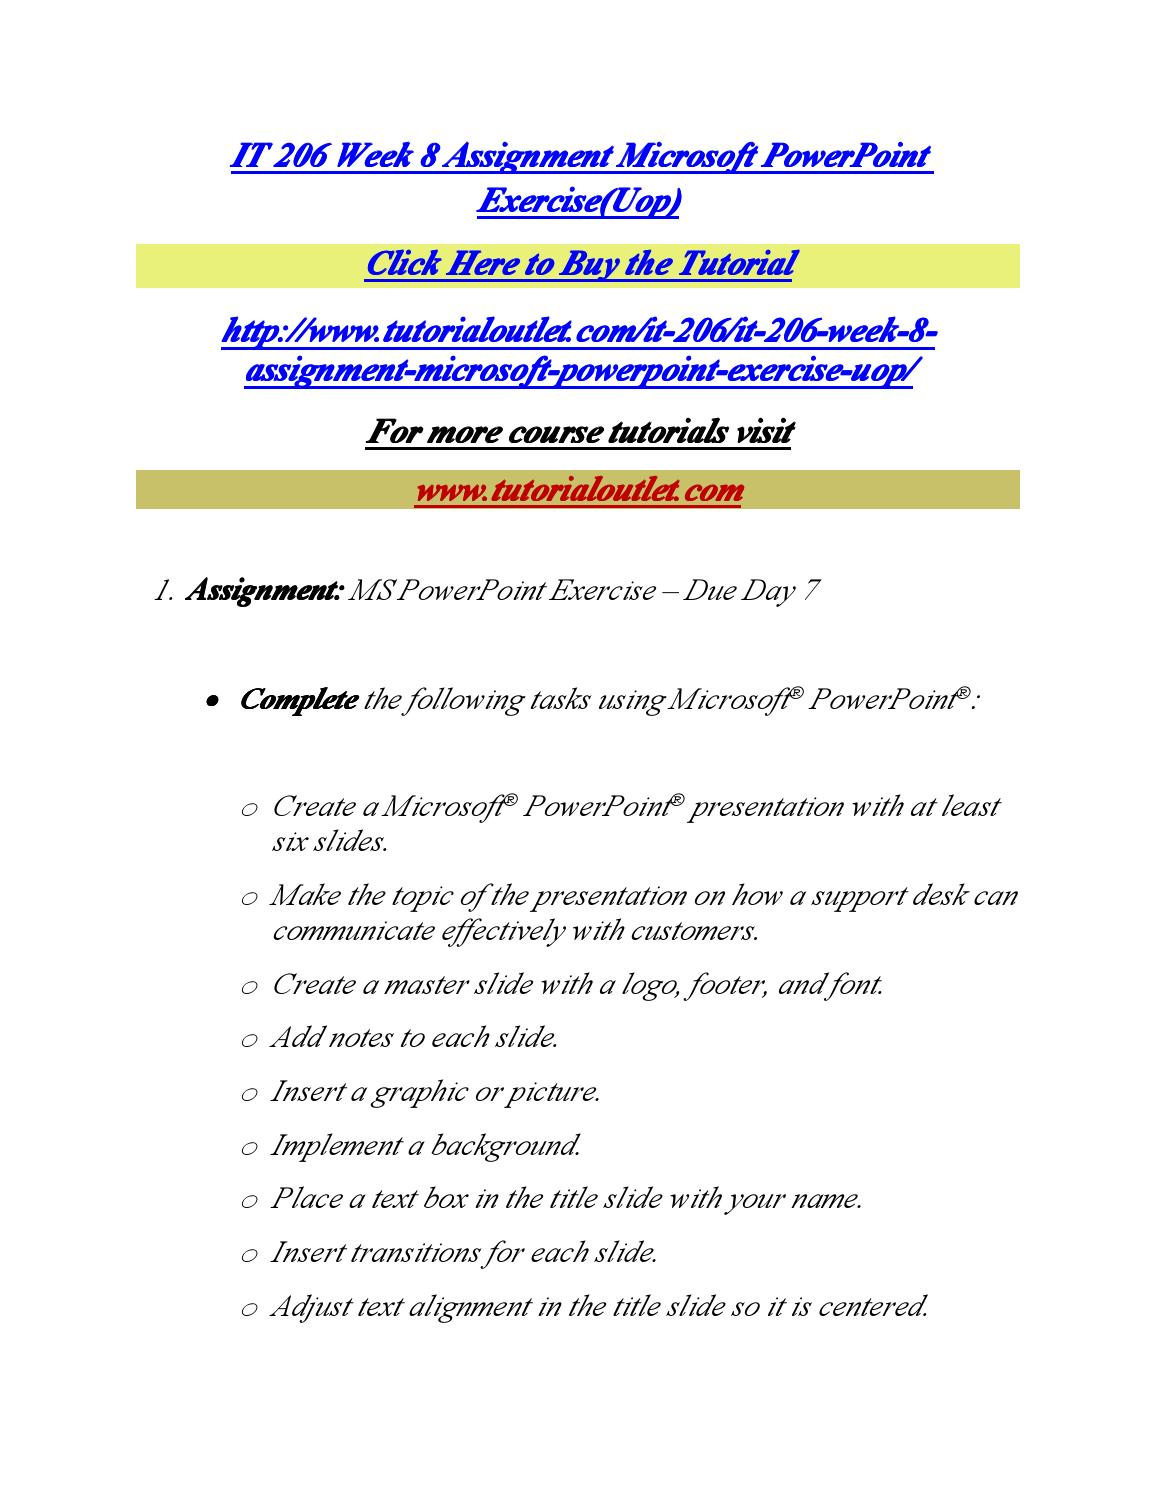 It 206 week 8 assignment microsoft powerpoint exercise by andrella it 206 week 8 assignment microsoft powerpoint exercise by andrella issuu baditri Image collections